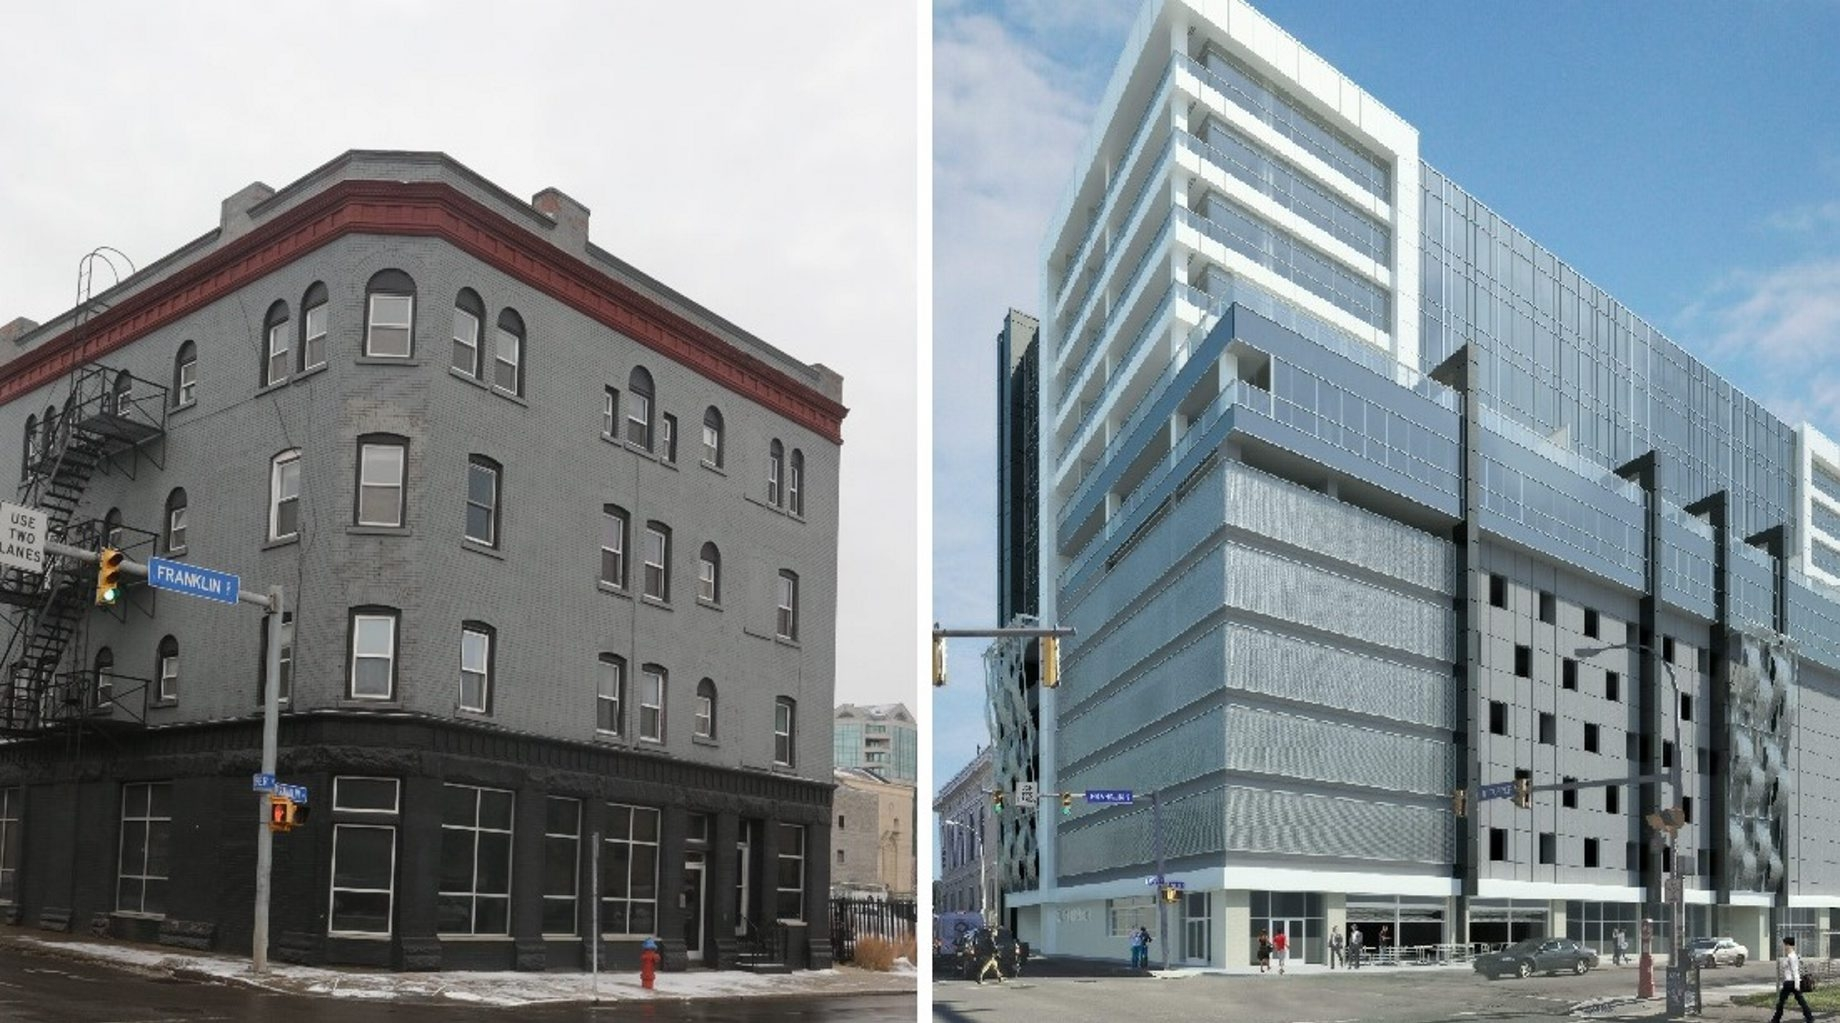 The historic Bachelor Apartments on Franklin Street in Buffalo, left, would have to be demolished to allow for the construction of a hotel tower, shown in a rendering at right.